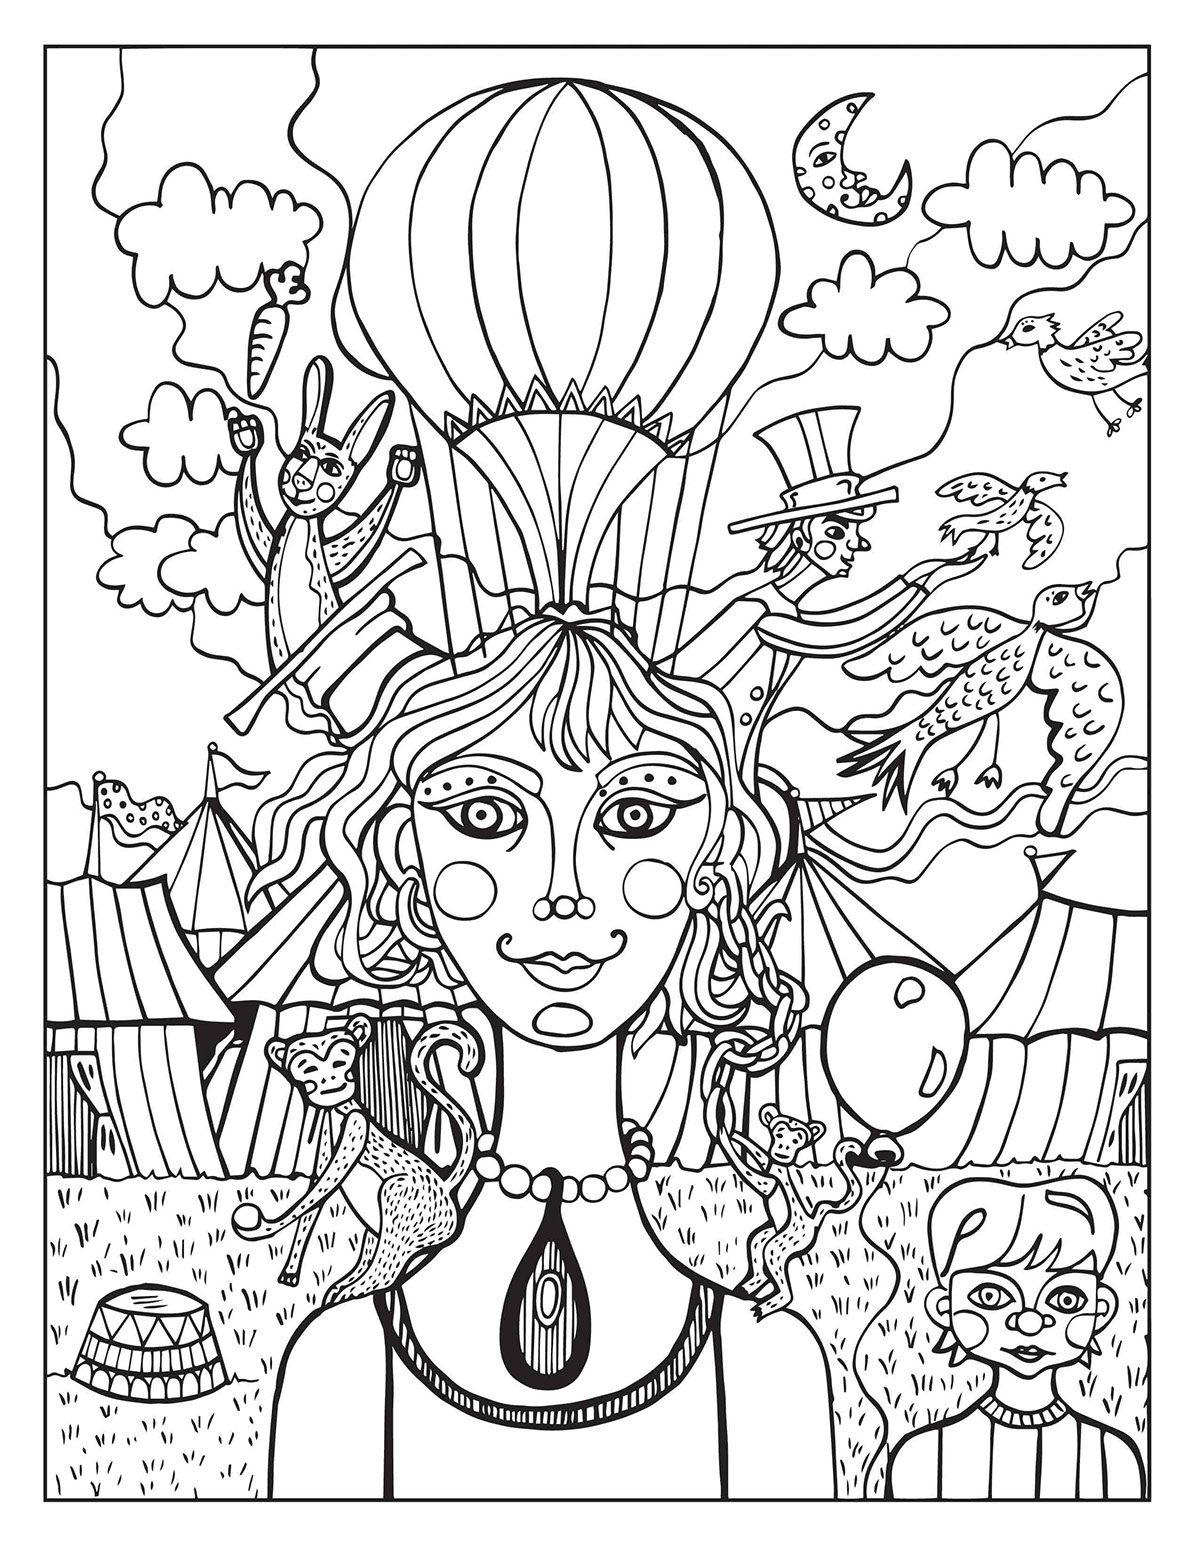 circus coloring pages for preschool circus coloring pages for preschool at getcoloringscom circus pages coloring for preschool